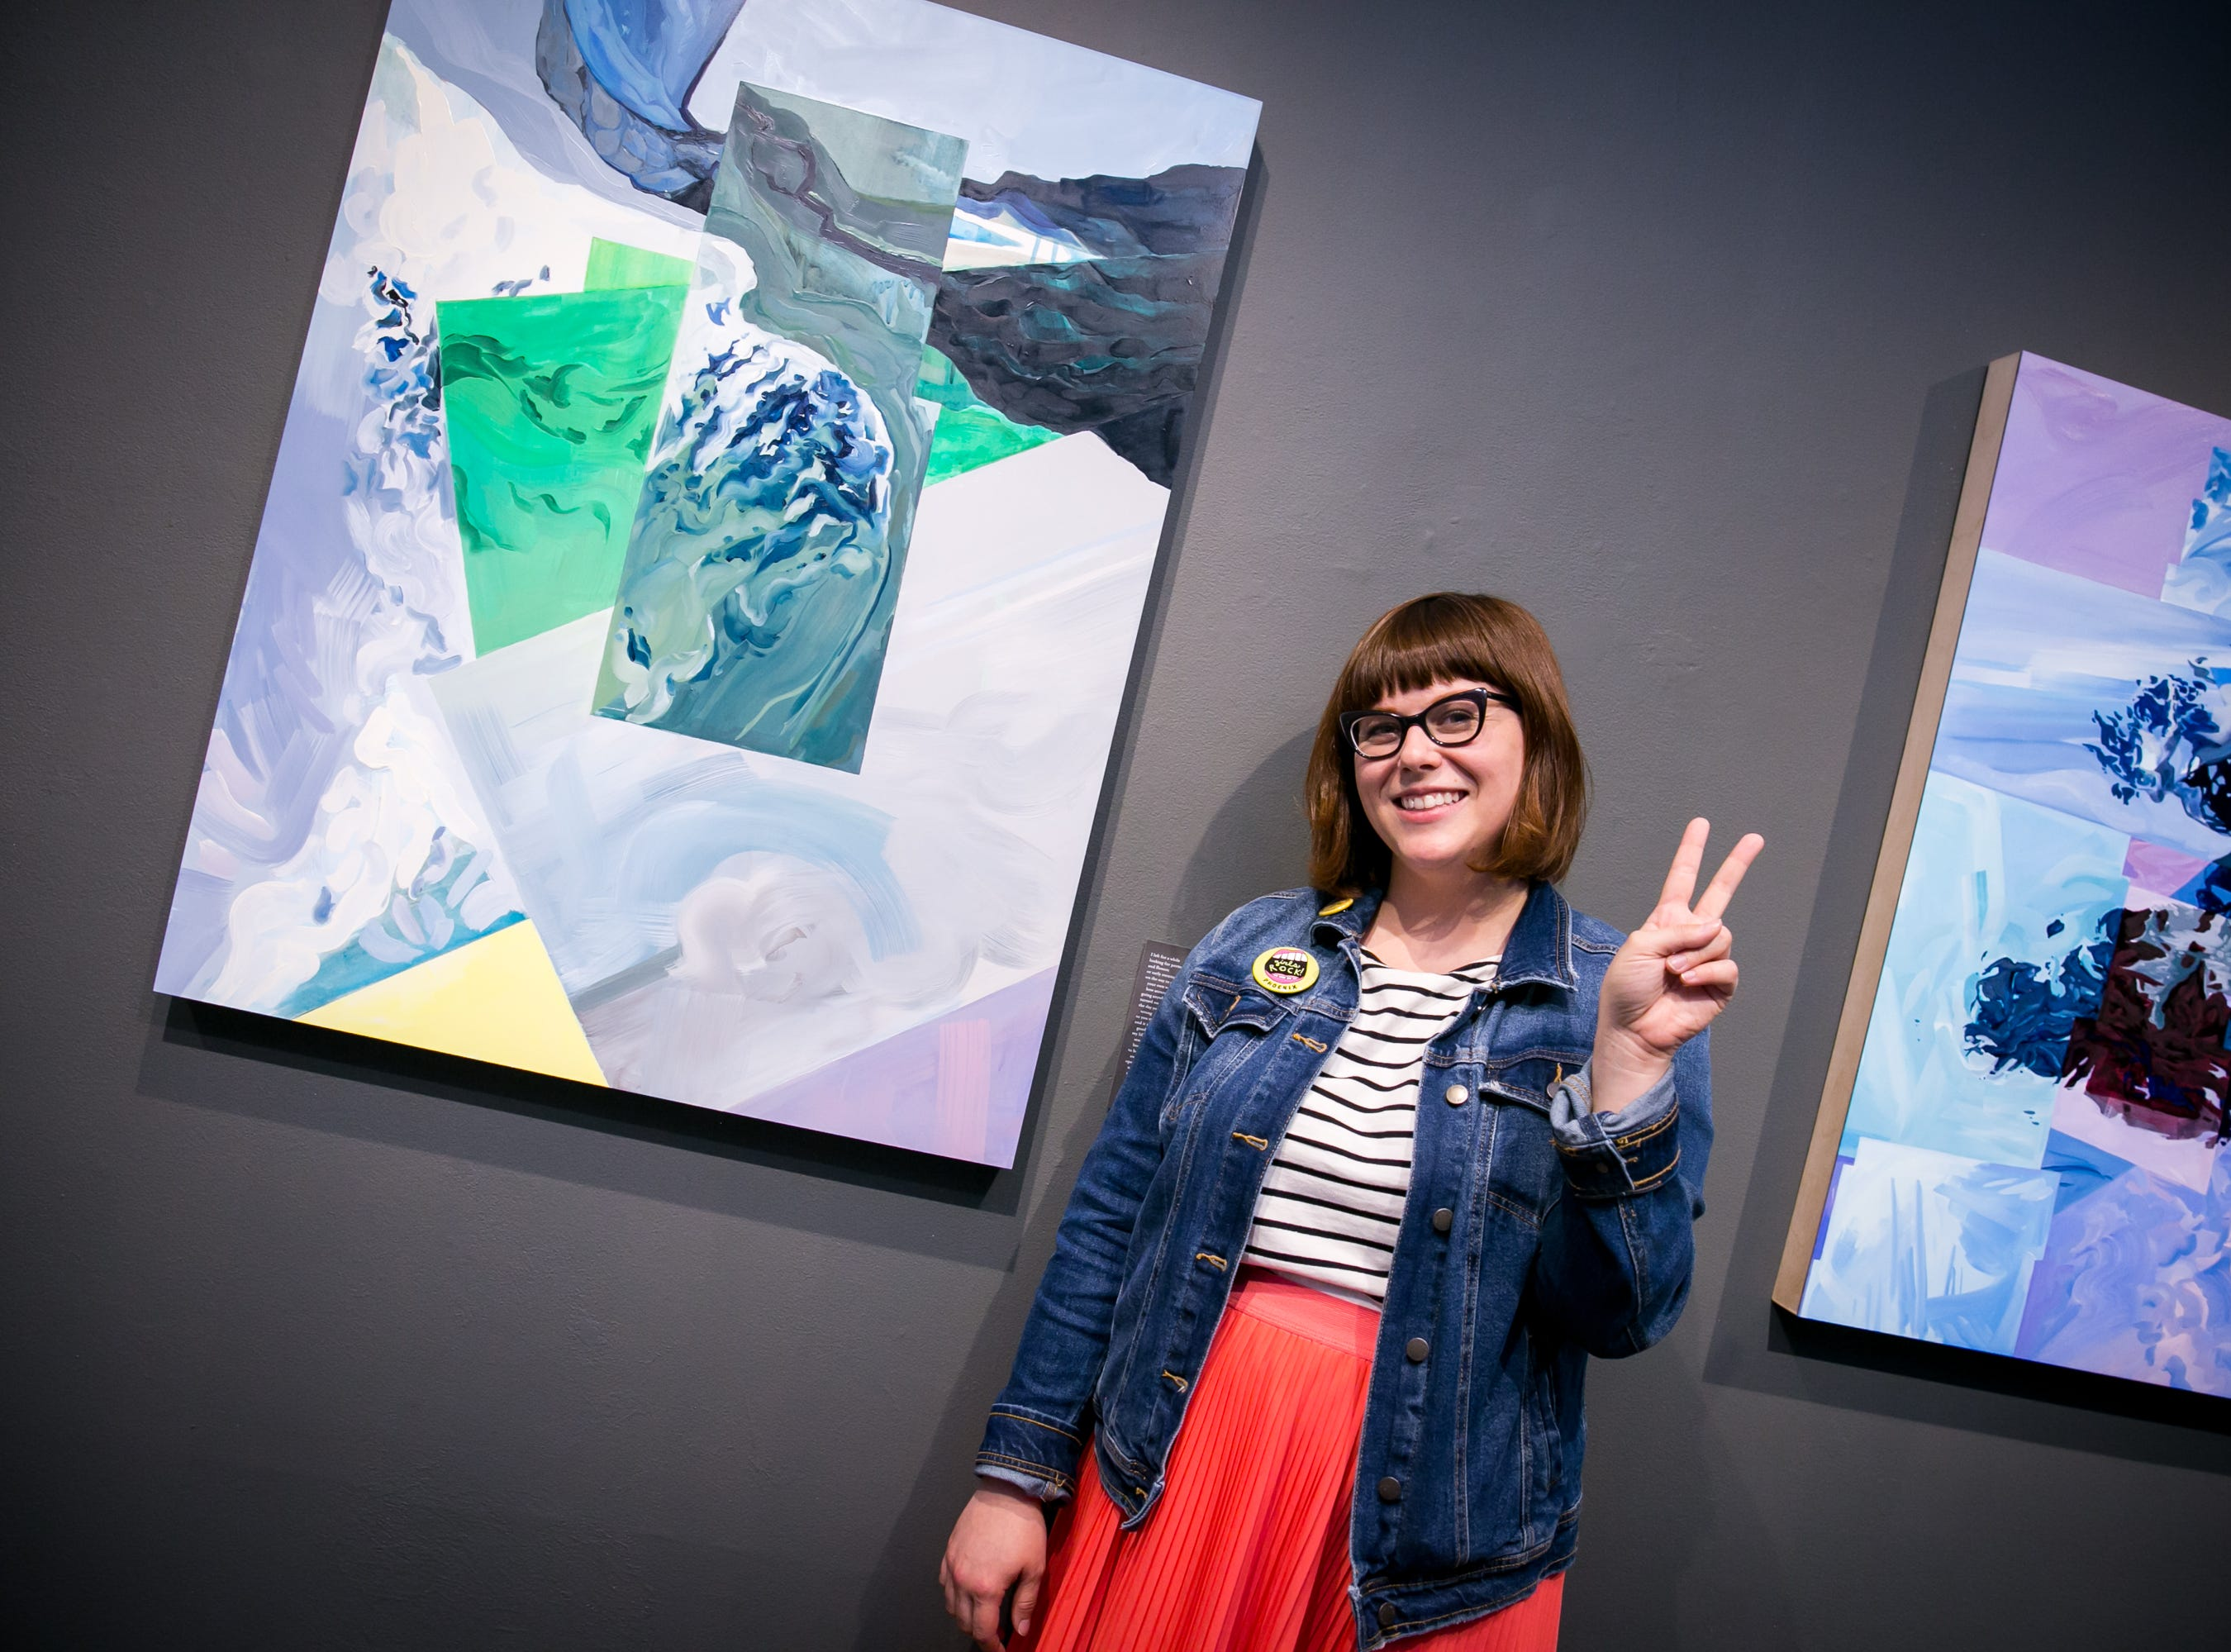 Tawny Kerr strikes a pose at her exhibition, Extrapolations, during First Friday on October 5, 2018.